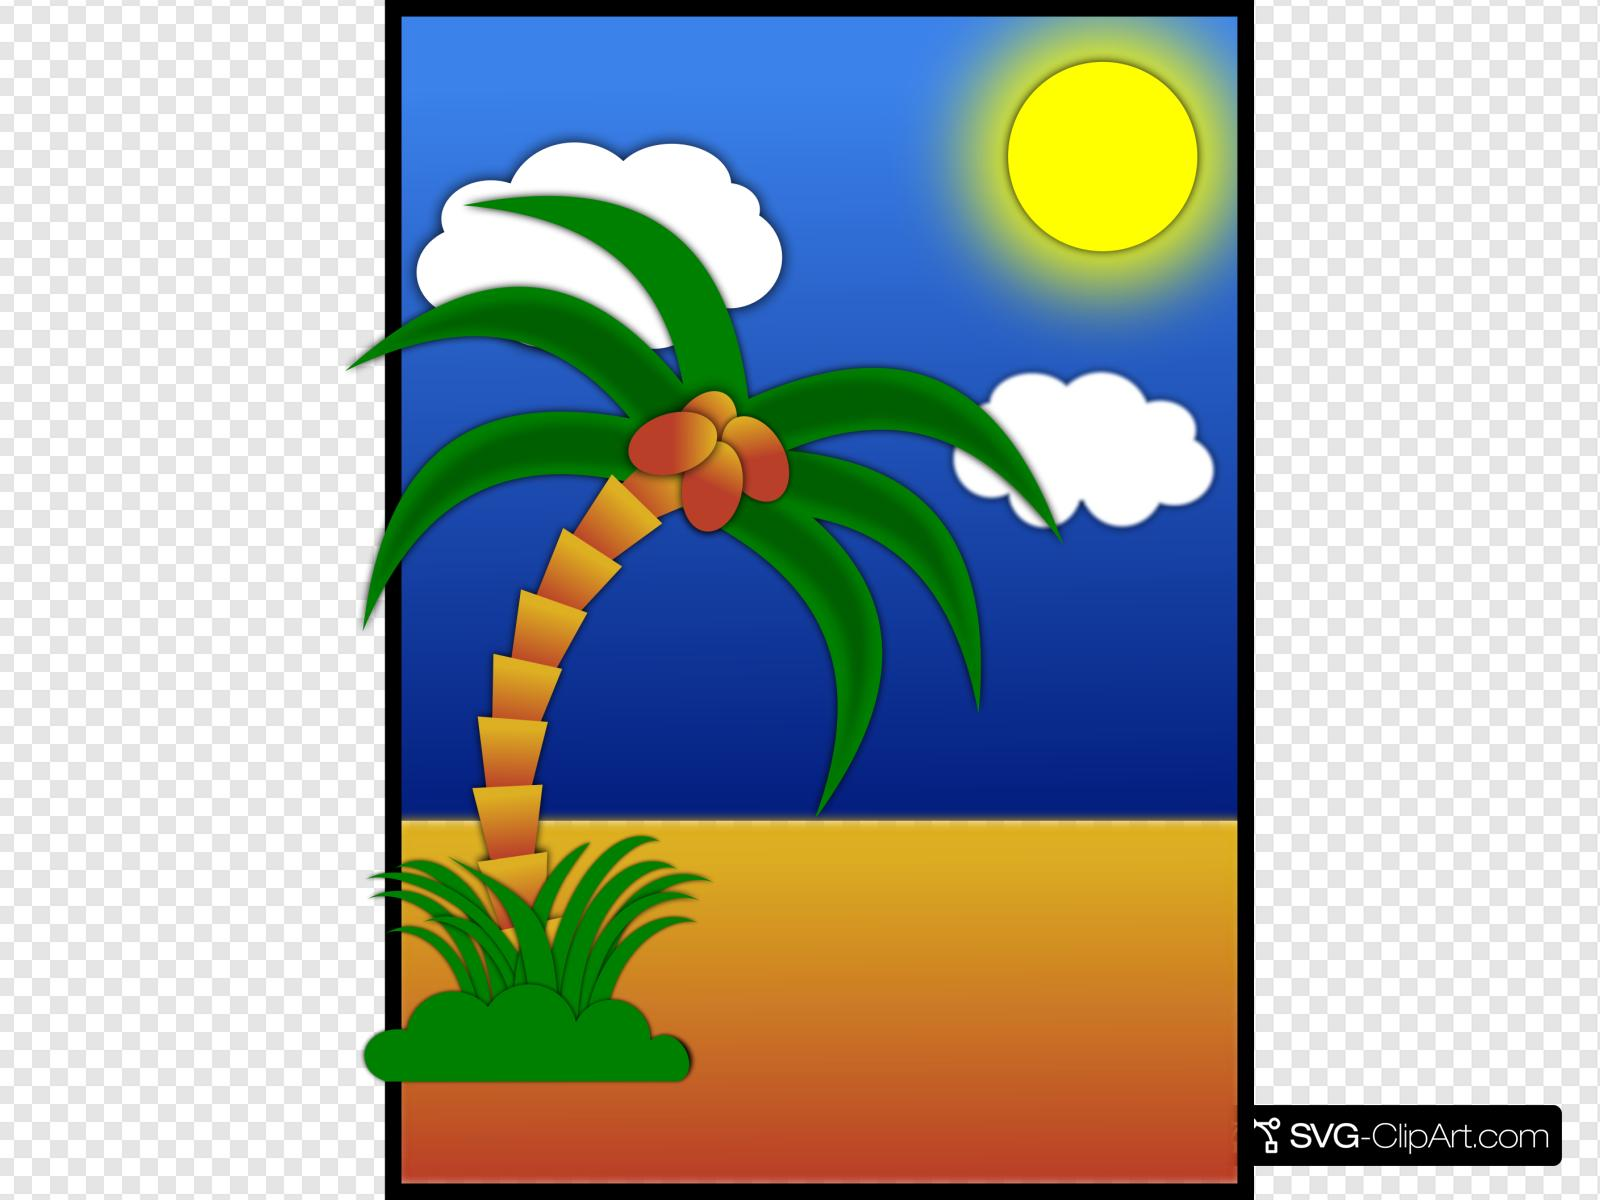 Postcard Clip art, Icon and SVG.